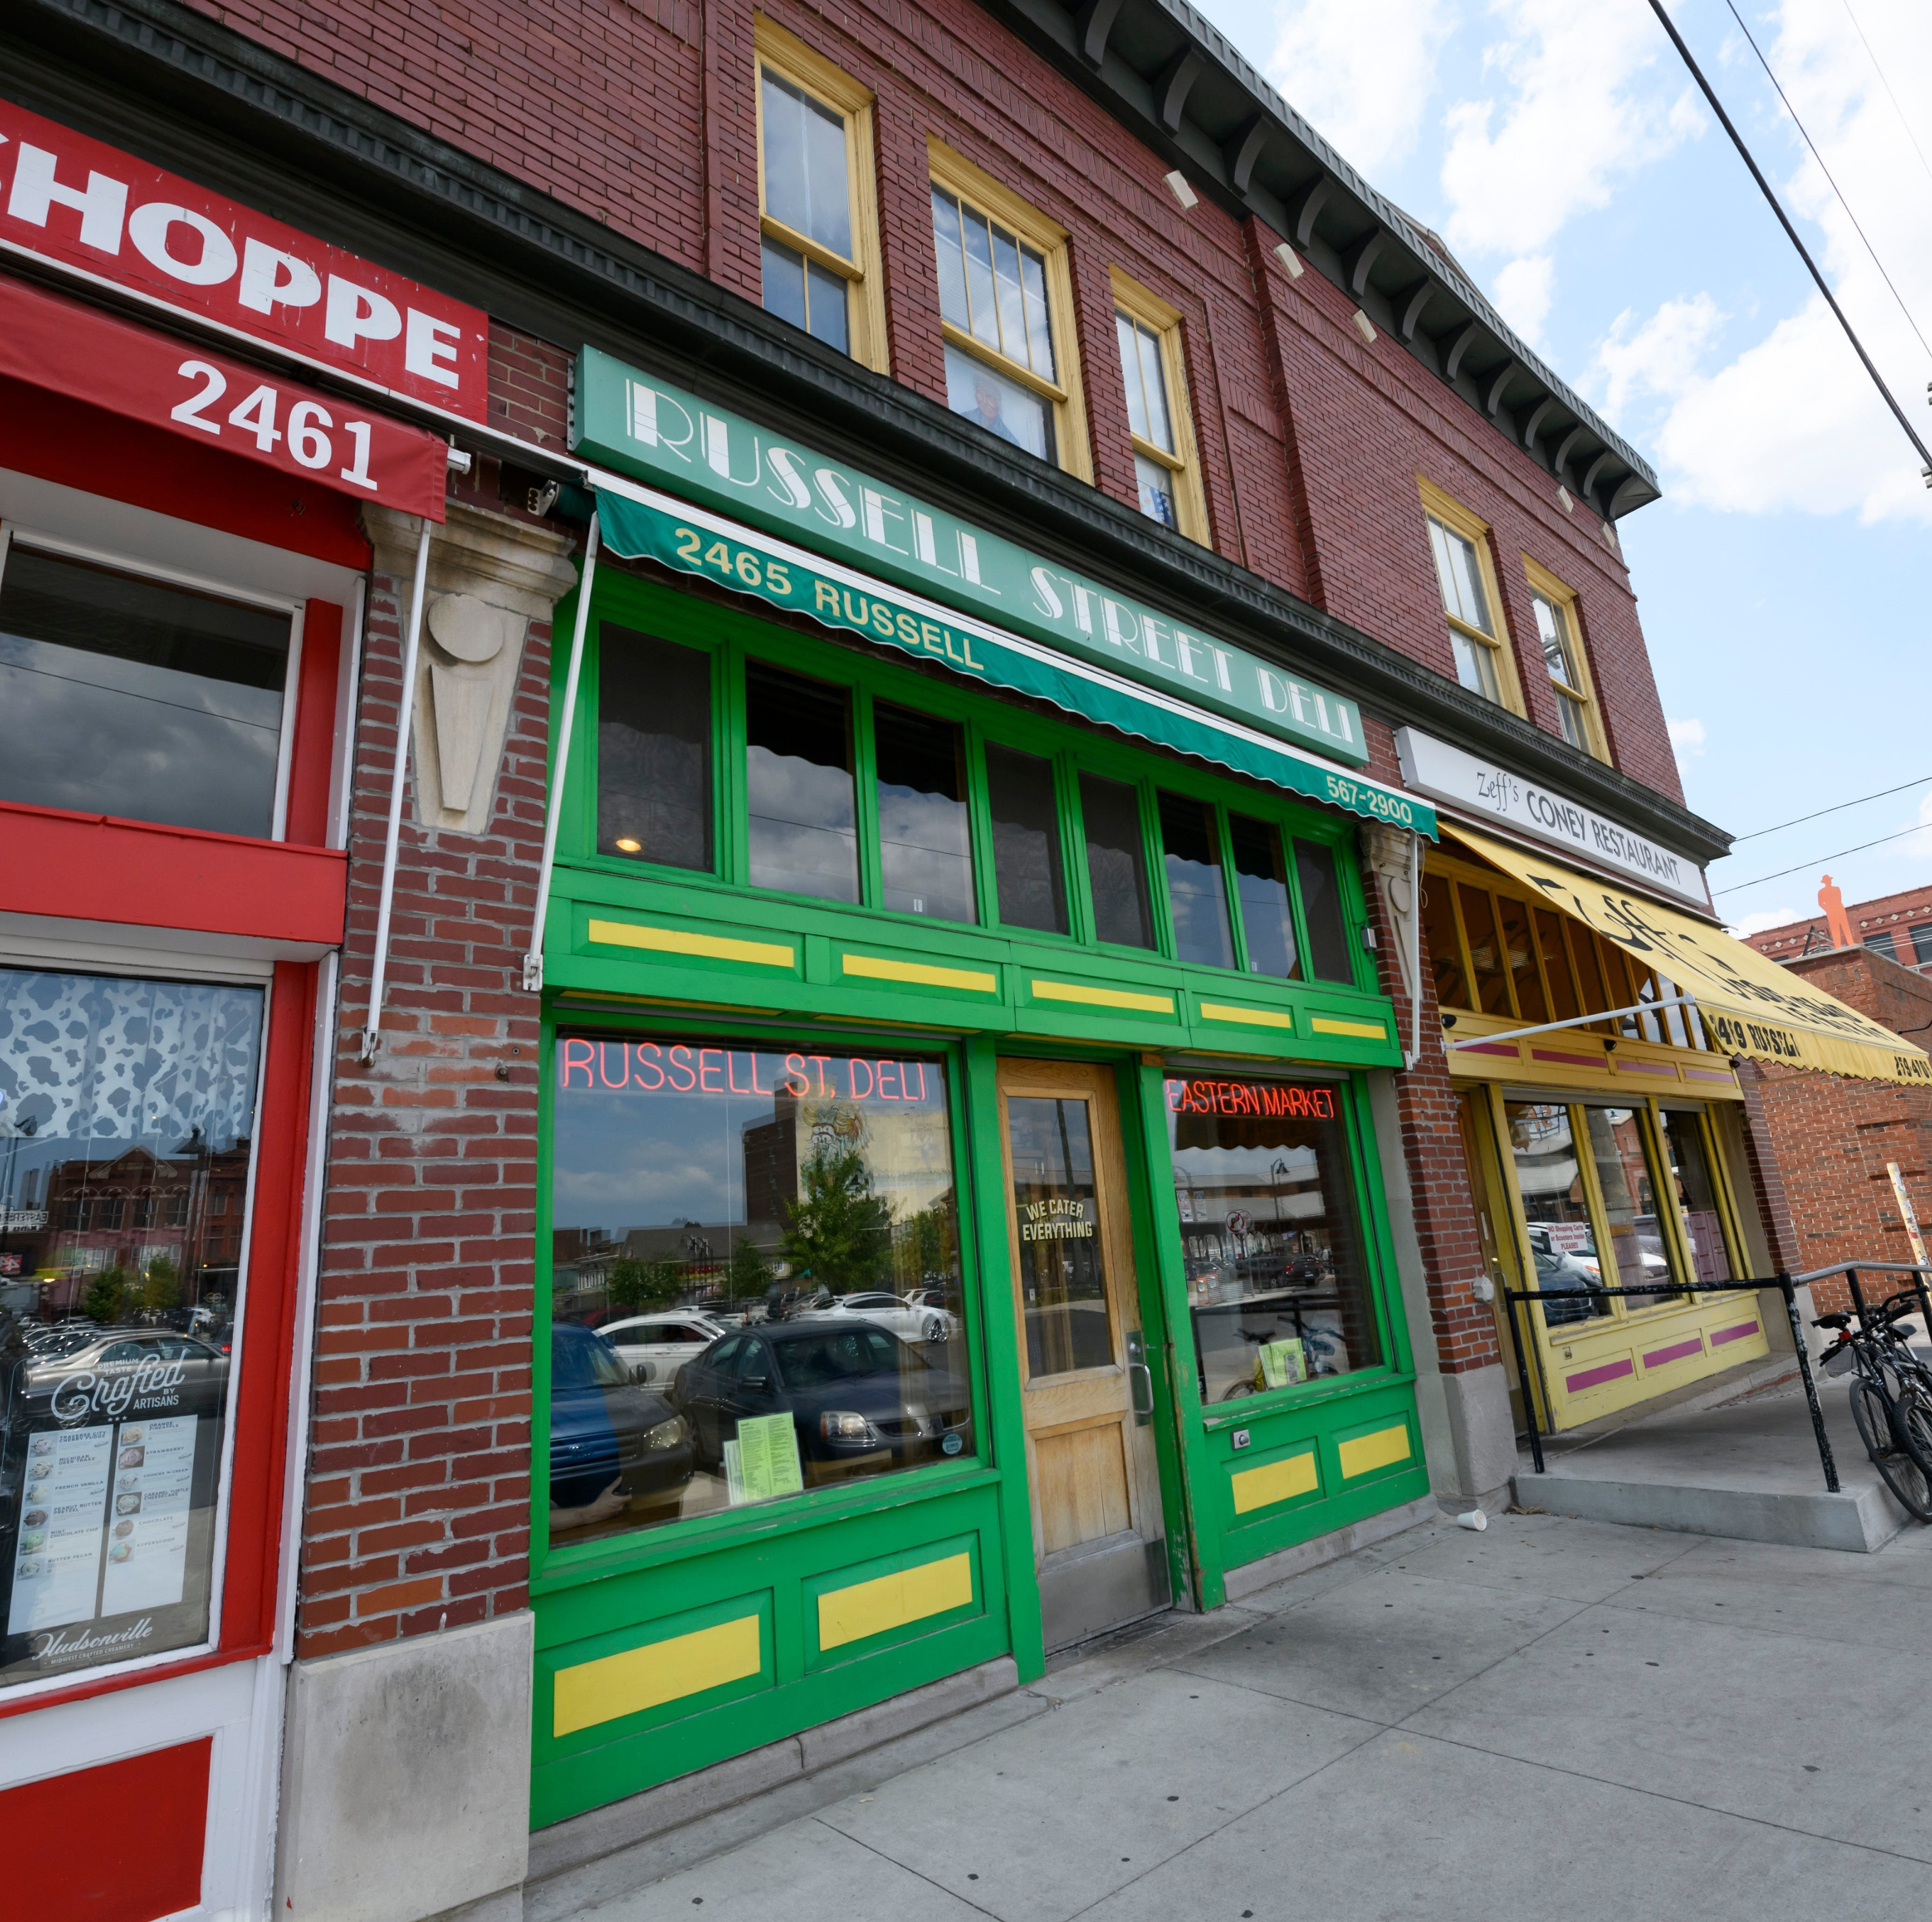 Russell Street Deli owner has six finalists for new location